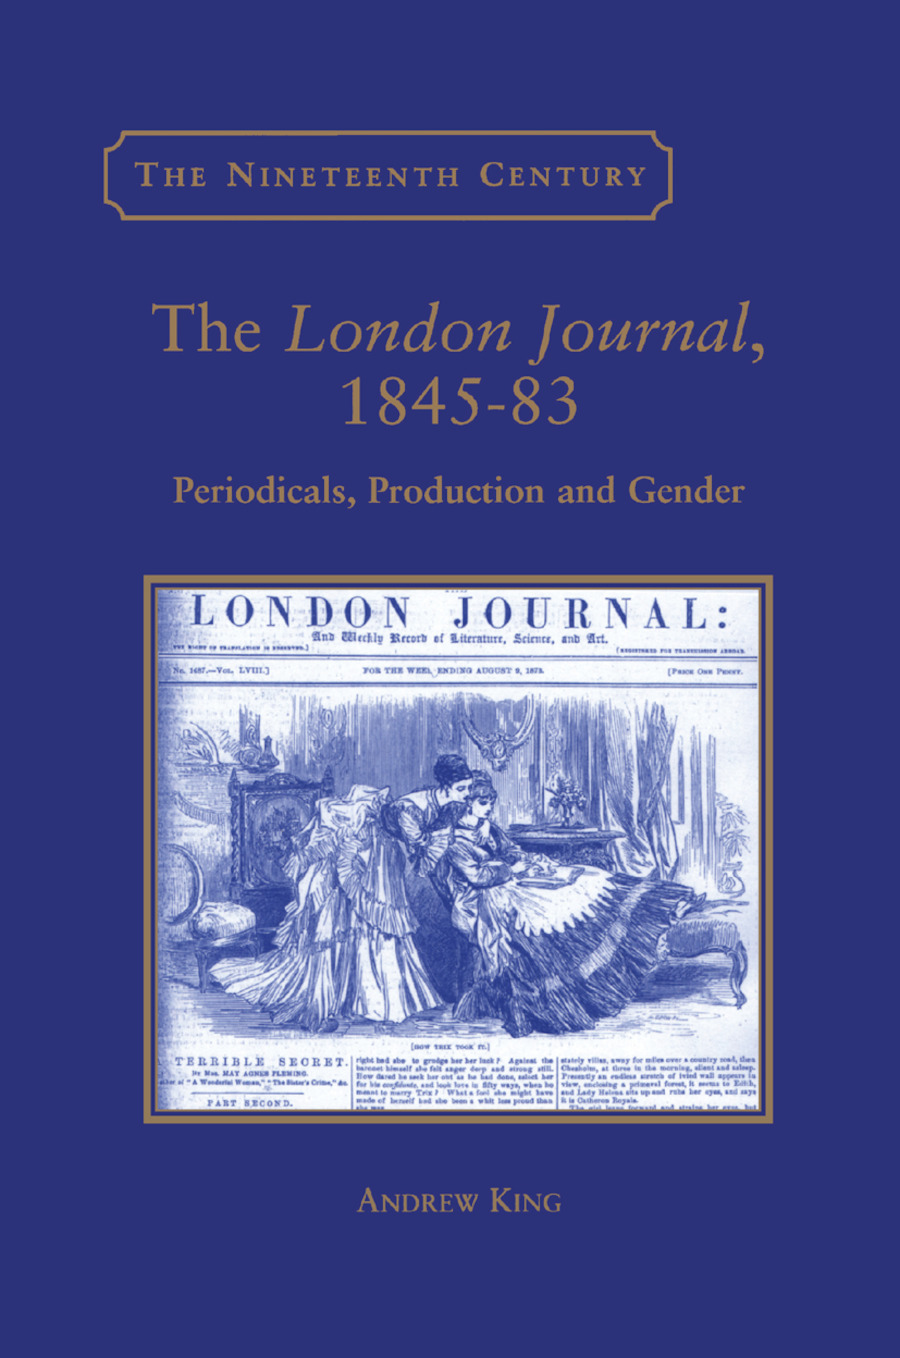 The London Journal, 1845-83: Periodicals, Production and Gender book cover